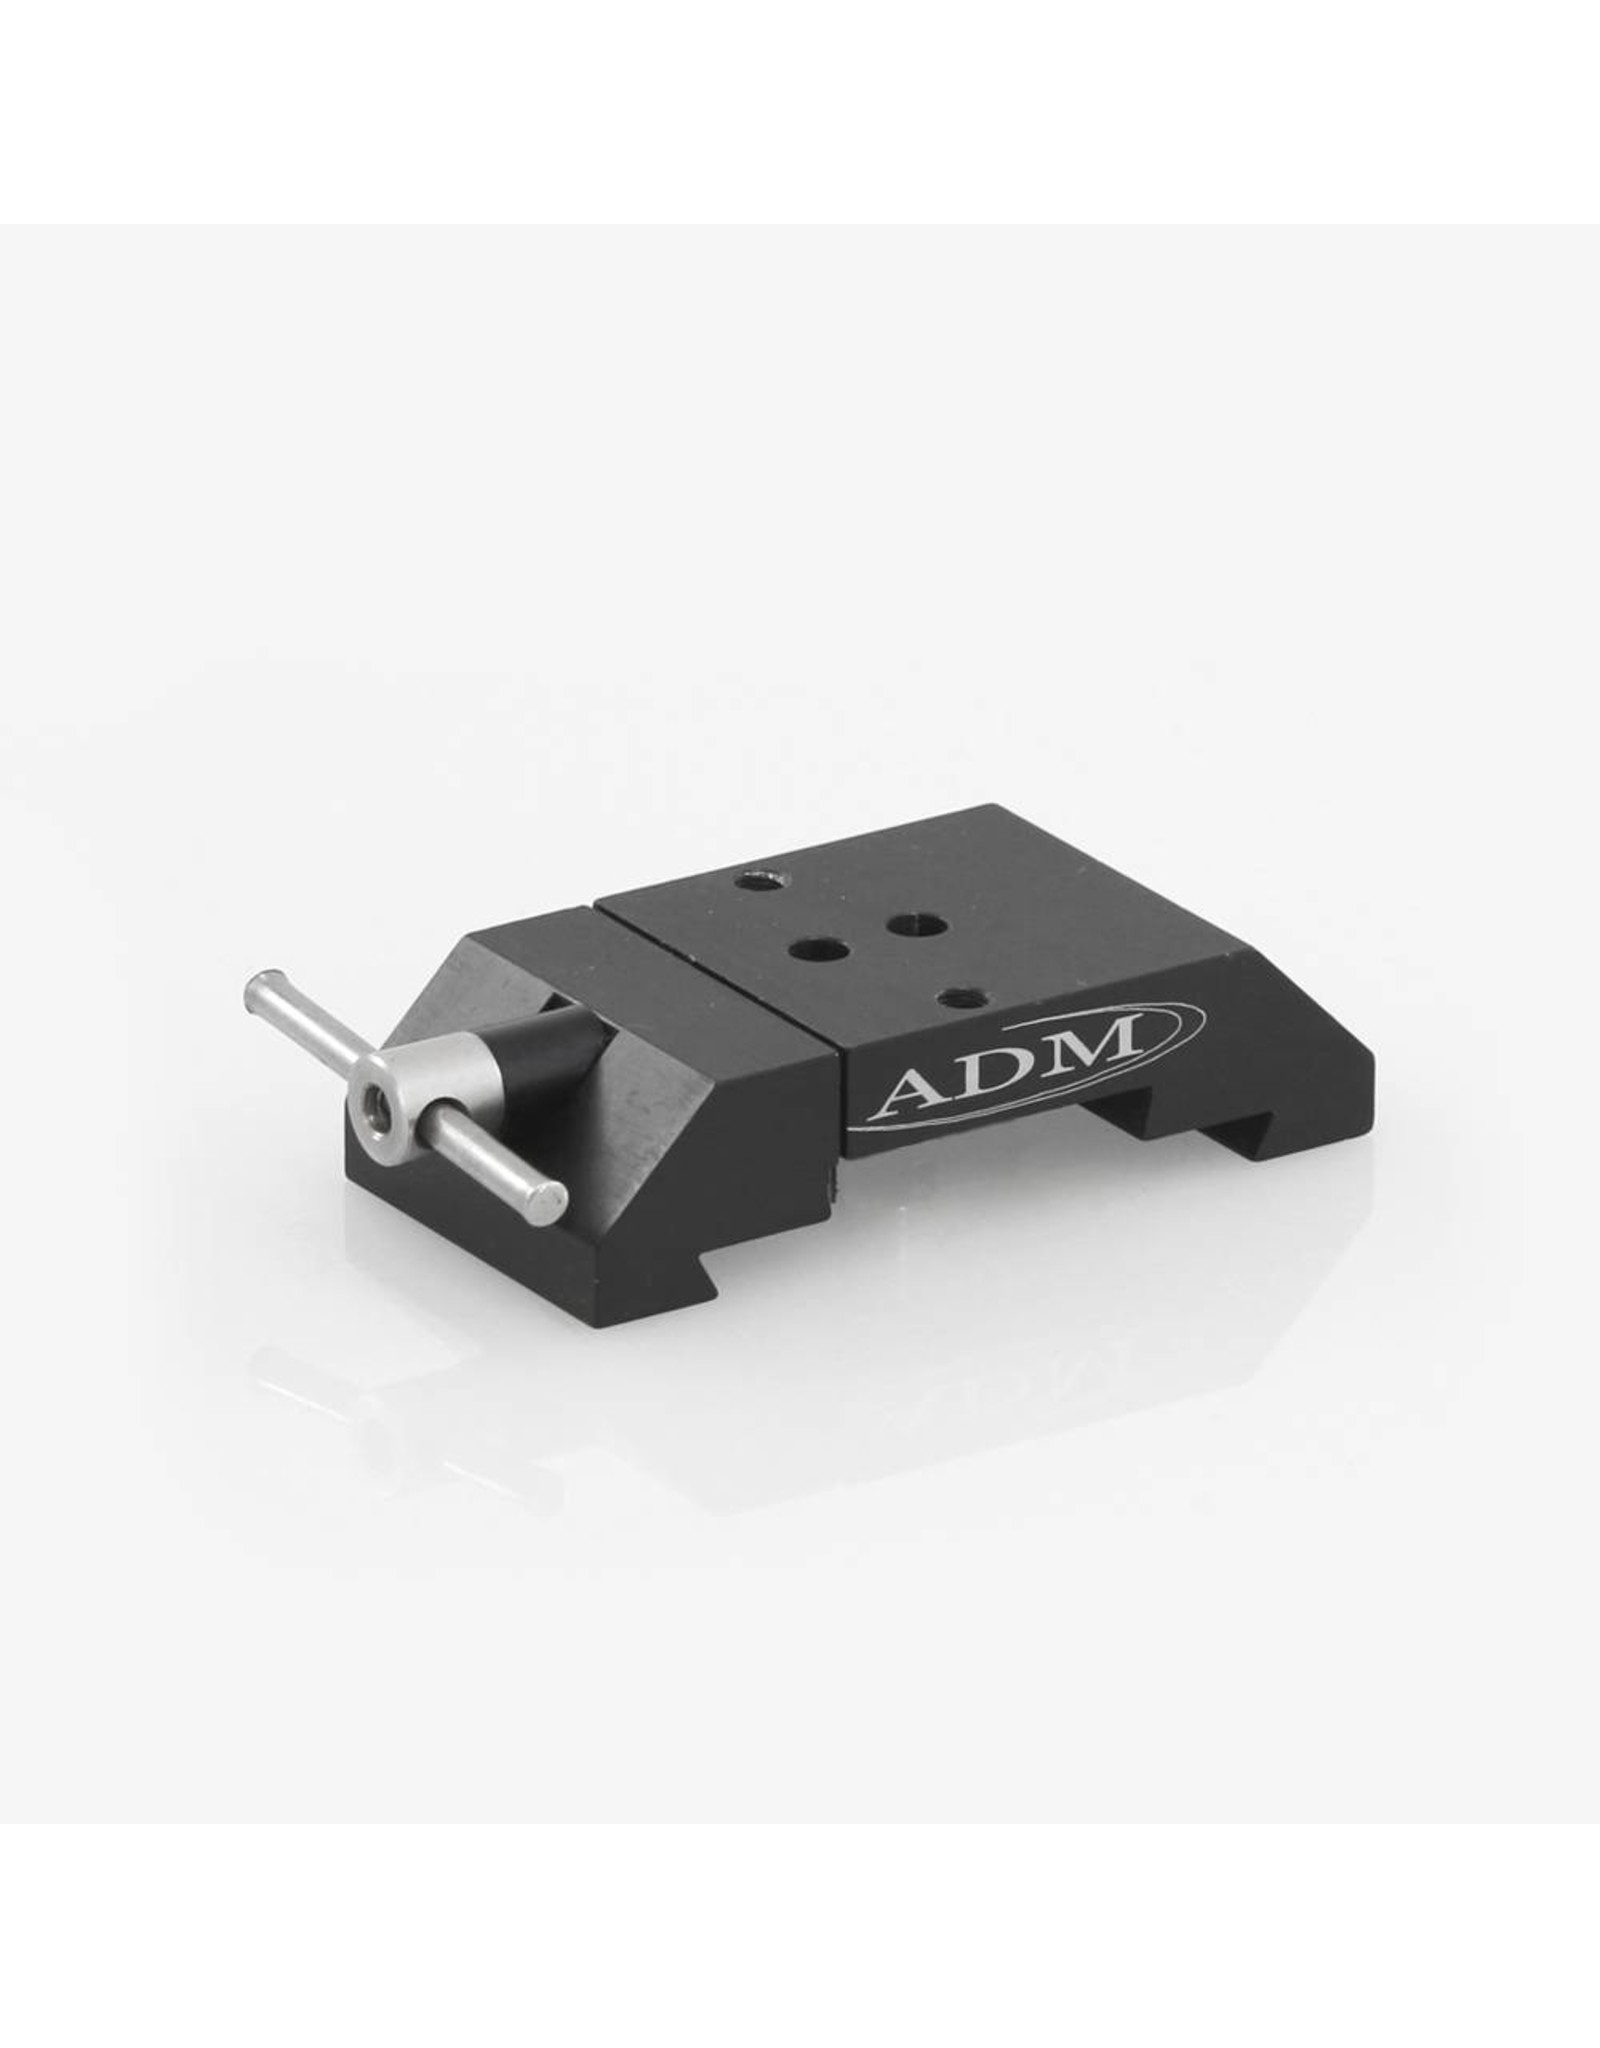 ADM ADM D Series or V Series Dovetail Adapter for Tele vue